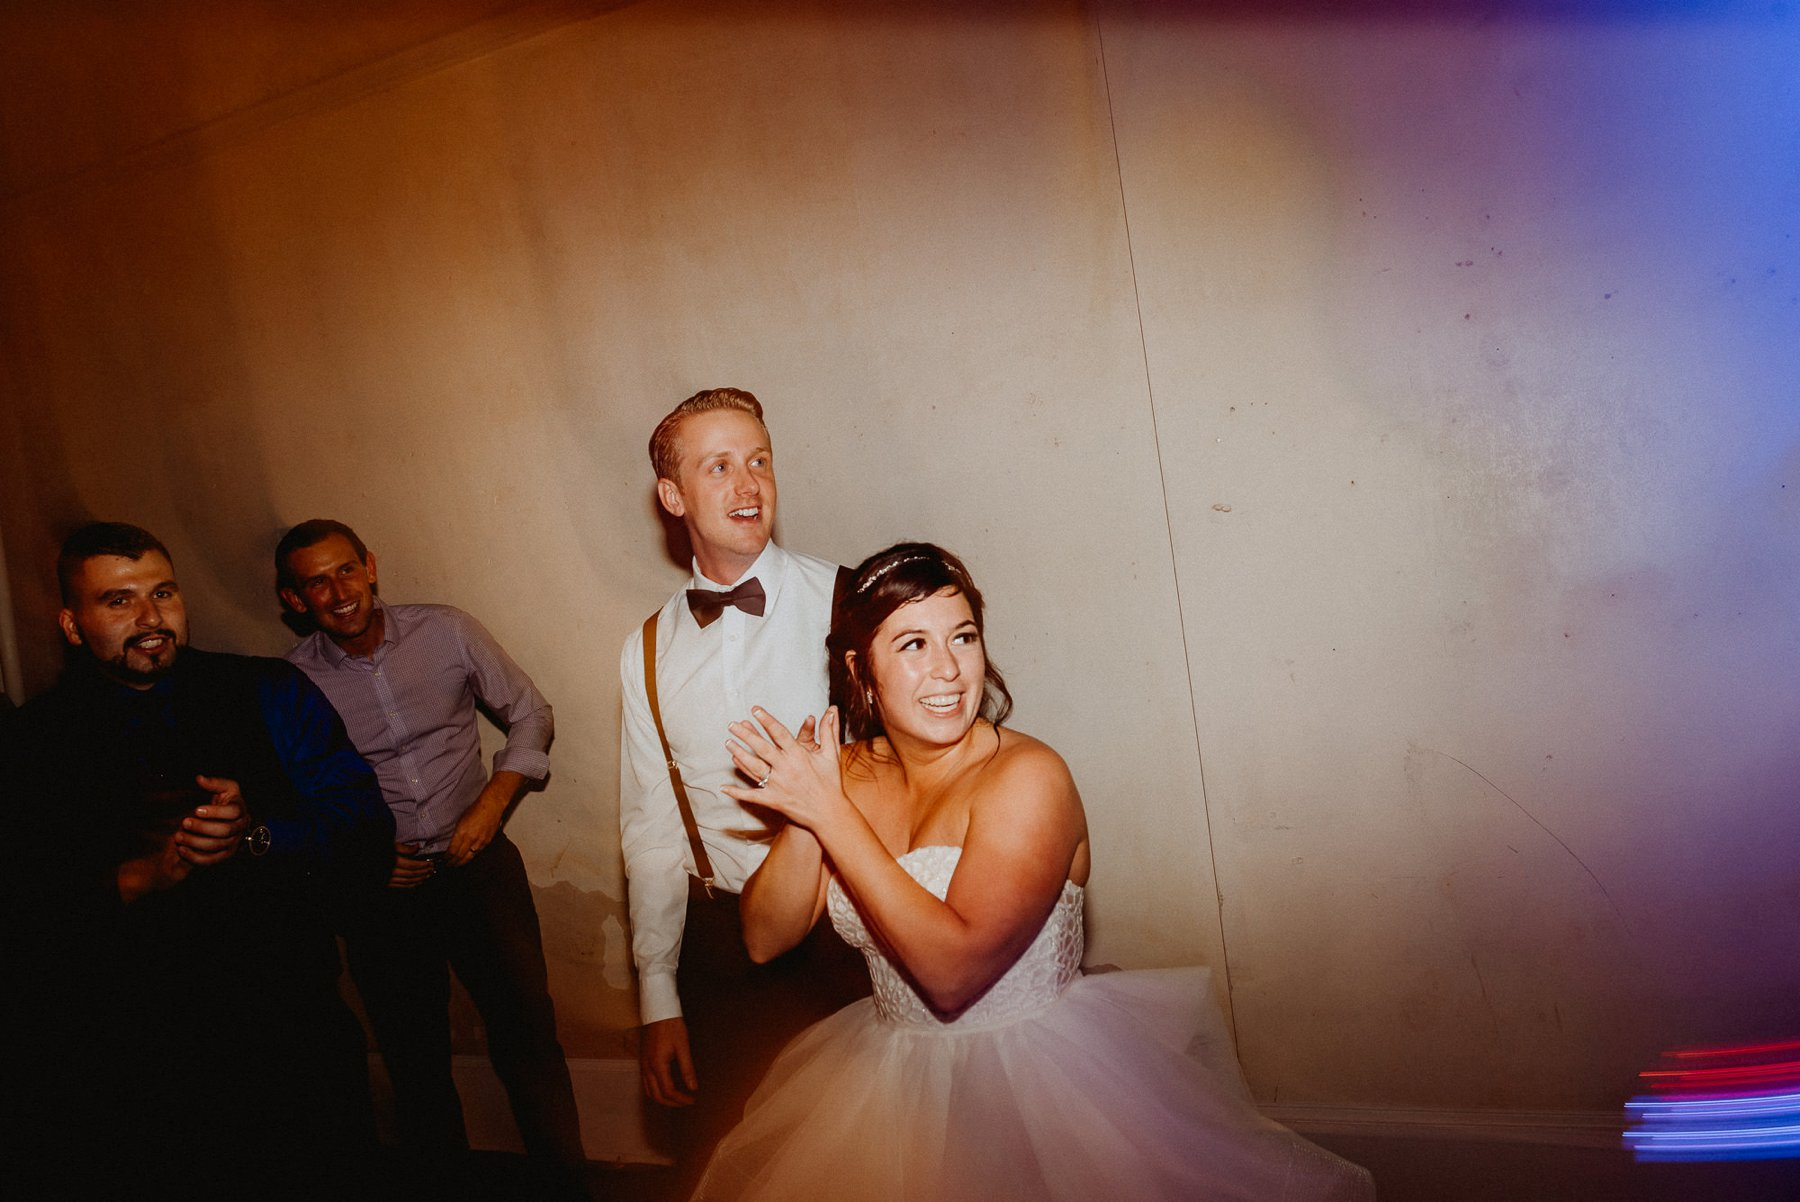 excelsior_lancaster_wedding_photographeer-069.jpg